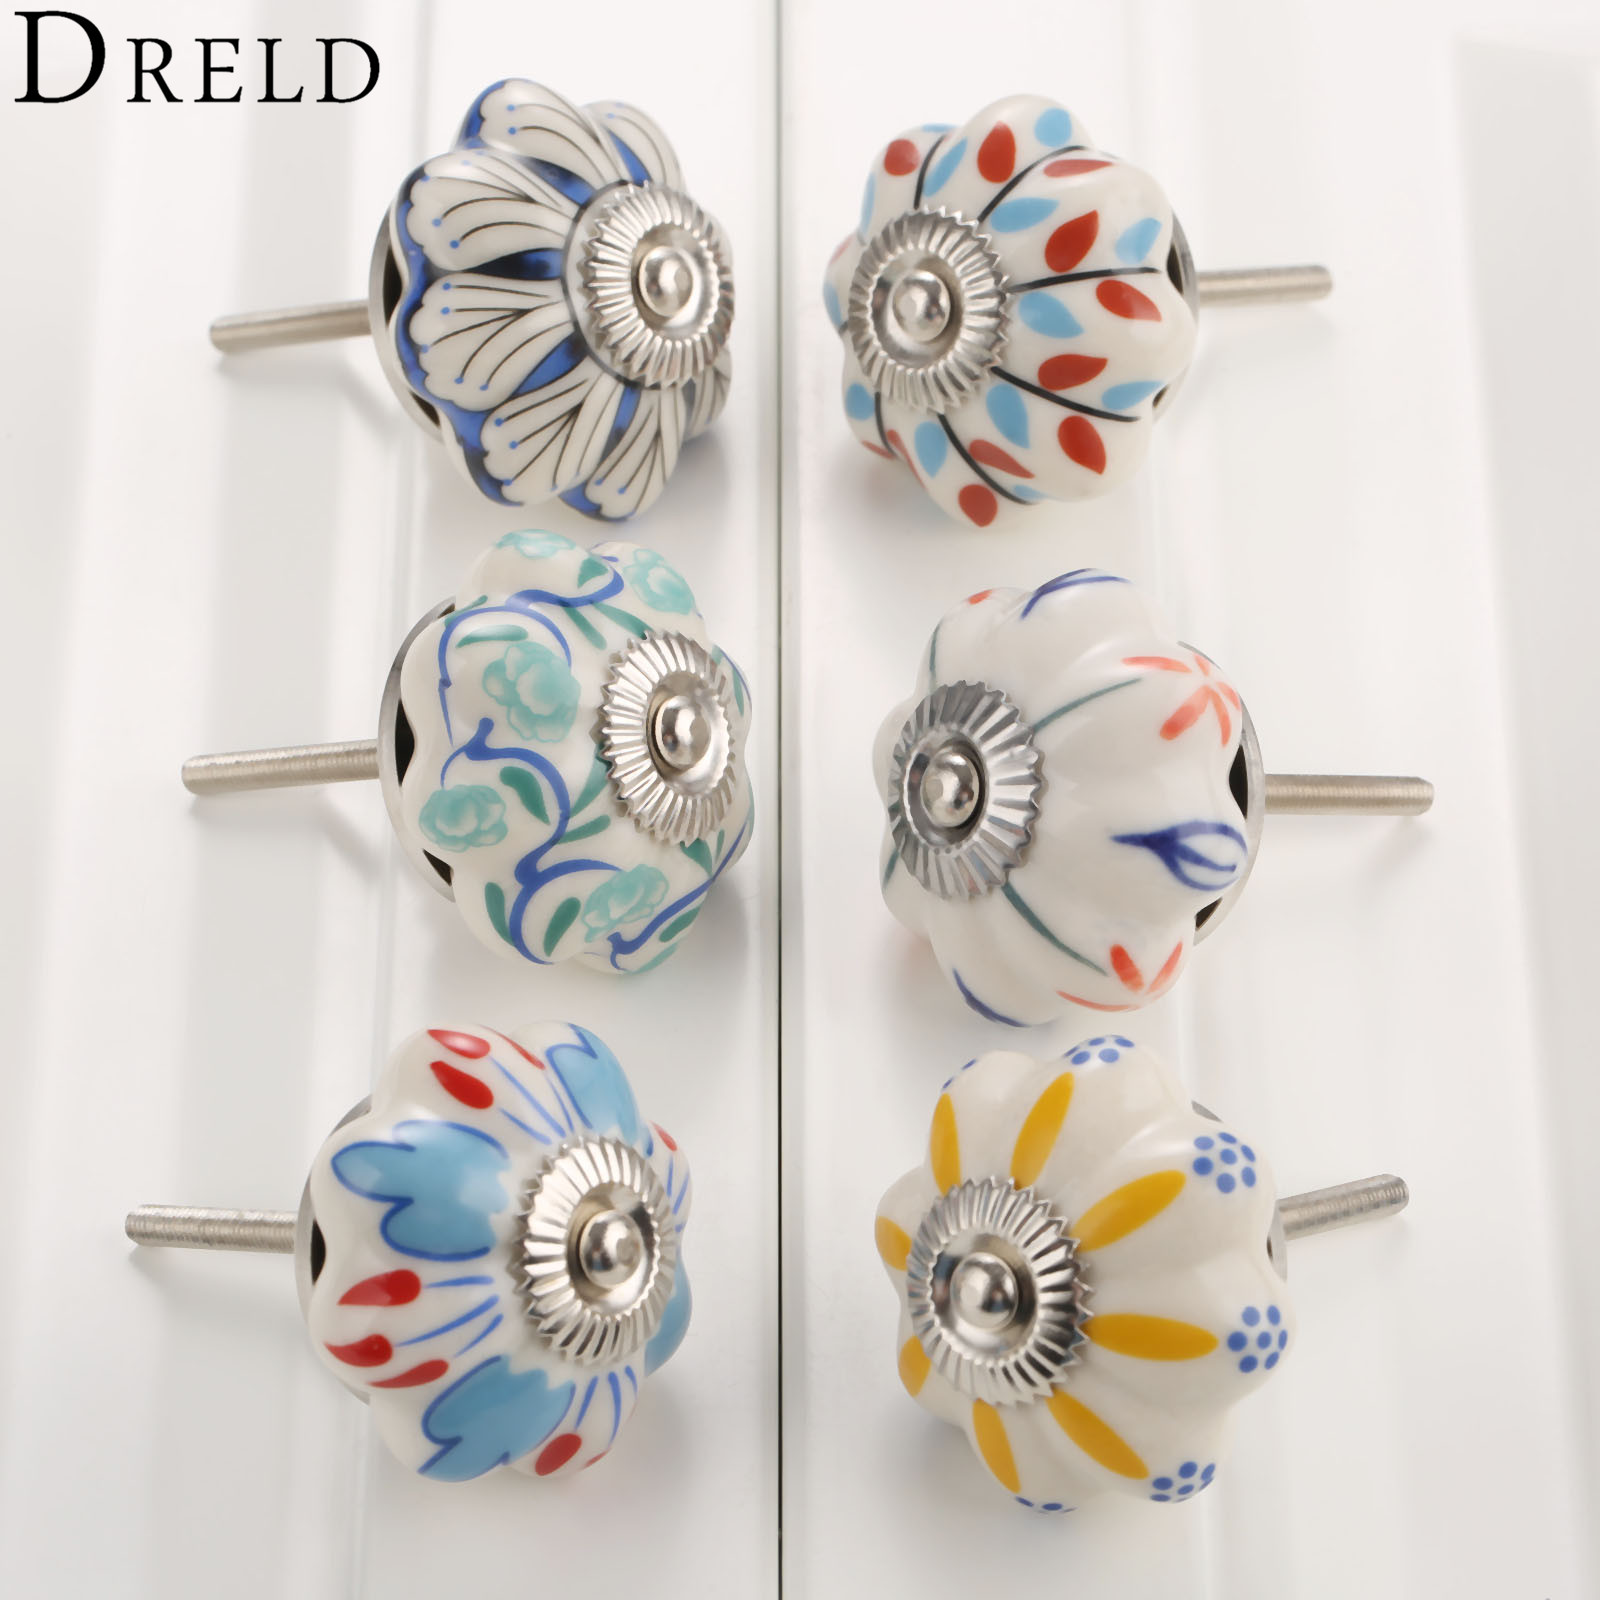 DRELD 40mm Furniture Handle Ceramic Drawer Cabinet Knobs and Handles Knobs Door Cupboard Kitchen Pull Handles Furniture Hardware furniture drawer handles wardrobe door handle and knobs cabinet kitchen hardware pull gold silver long hole spacing c c 96 224mm